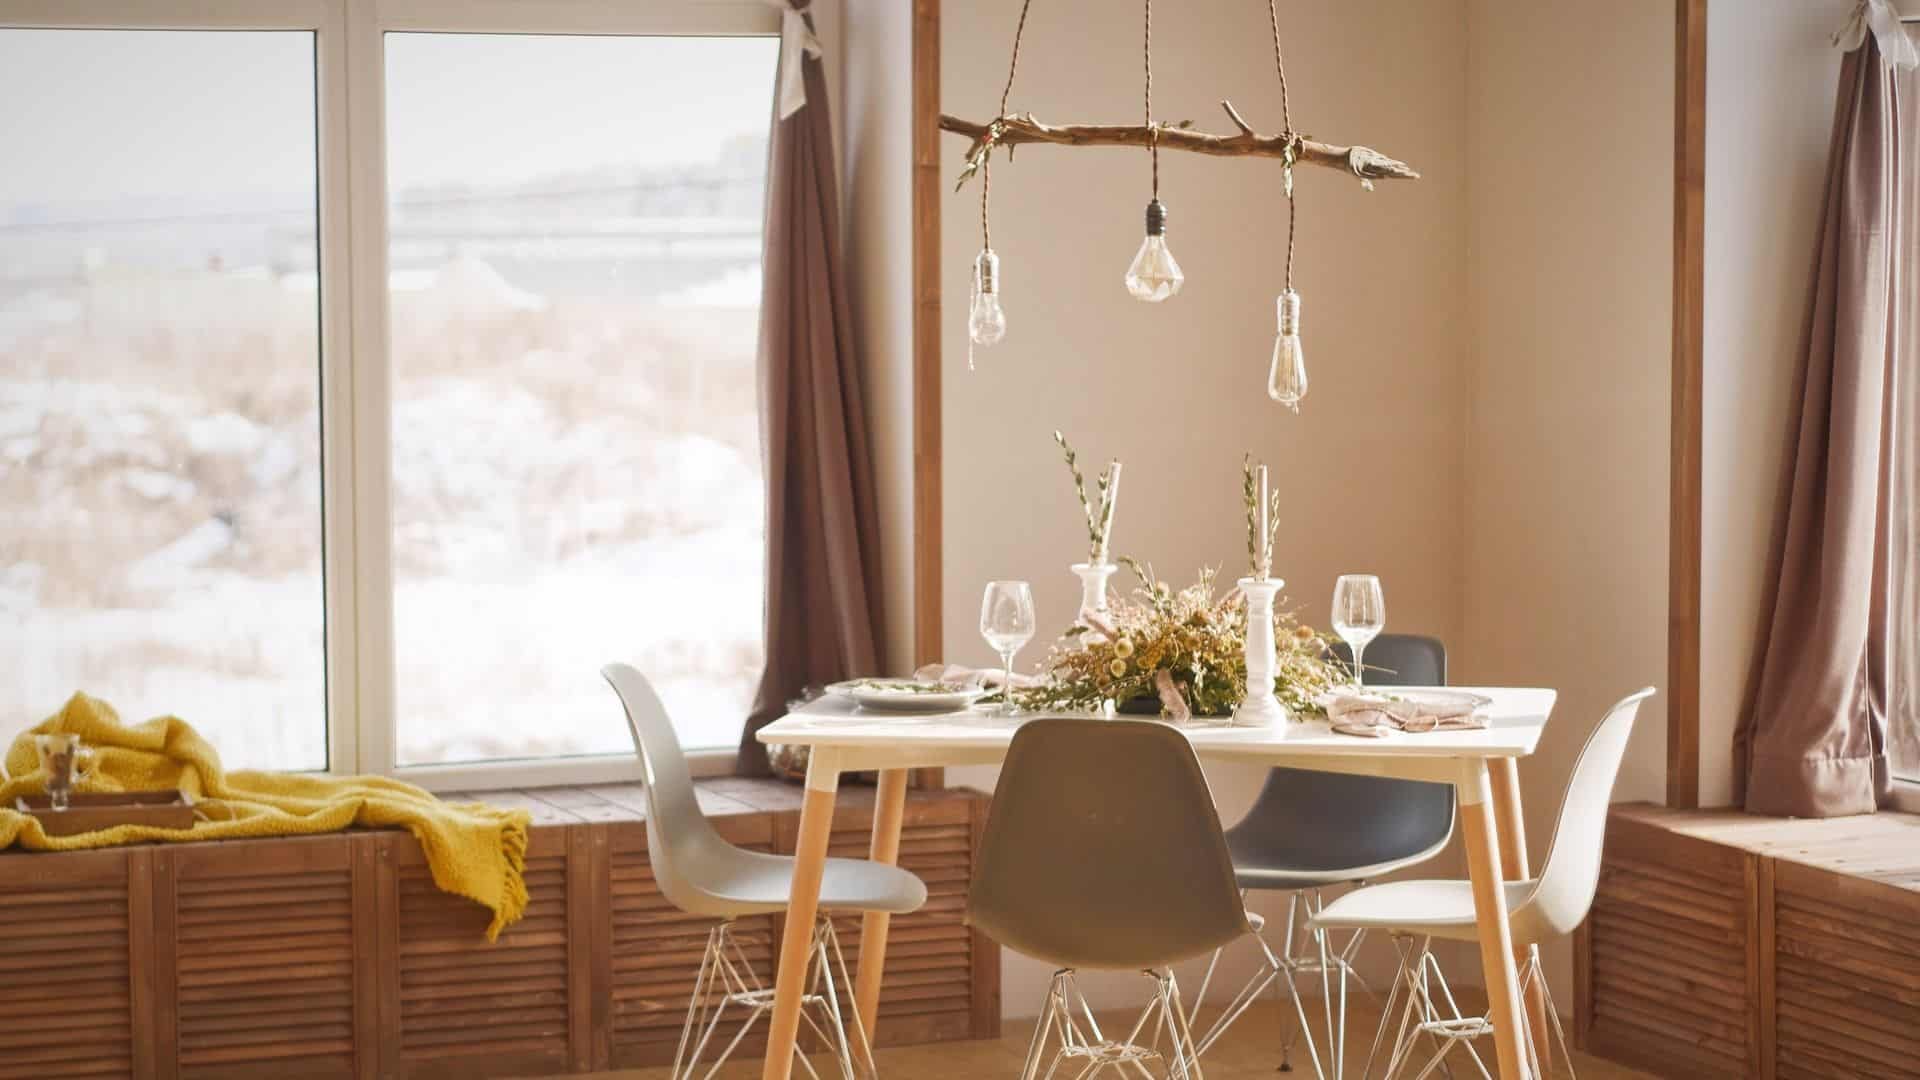 How Important is Dining Room Lighting?